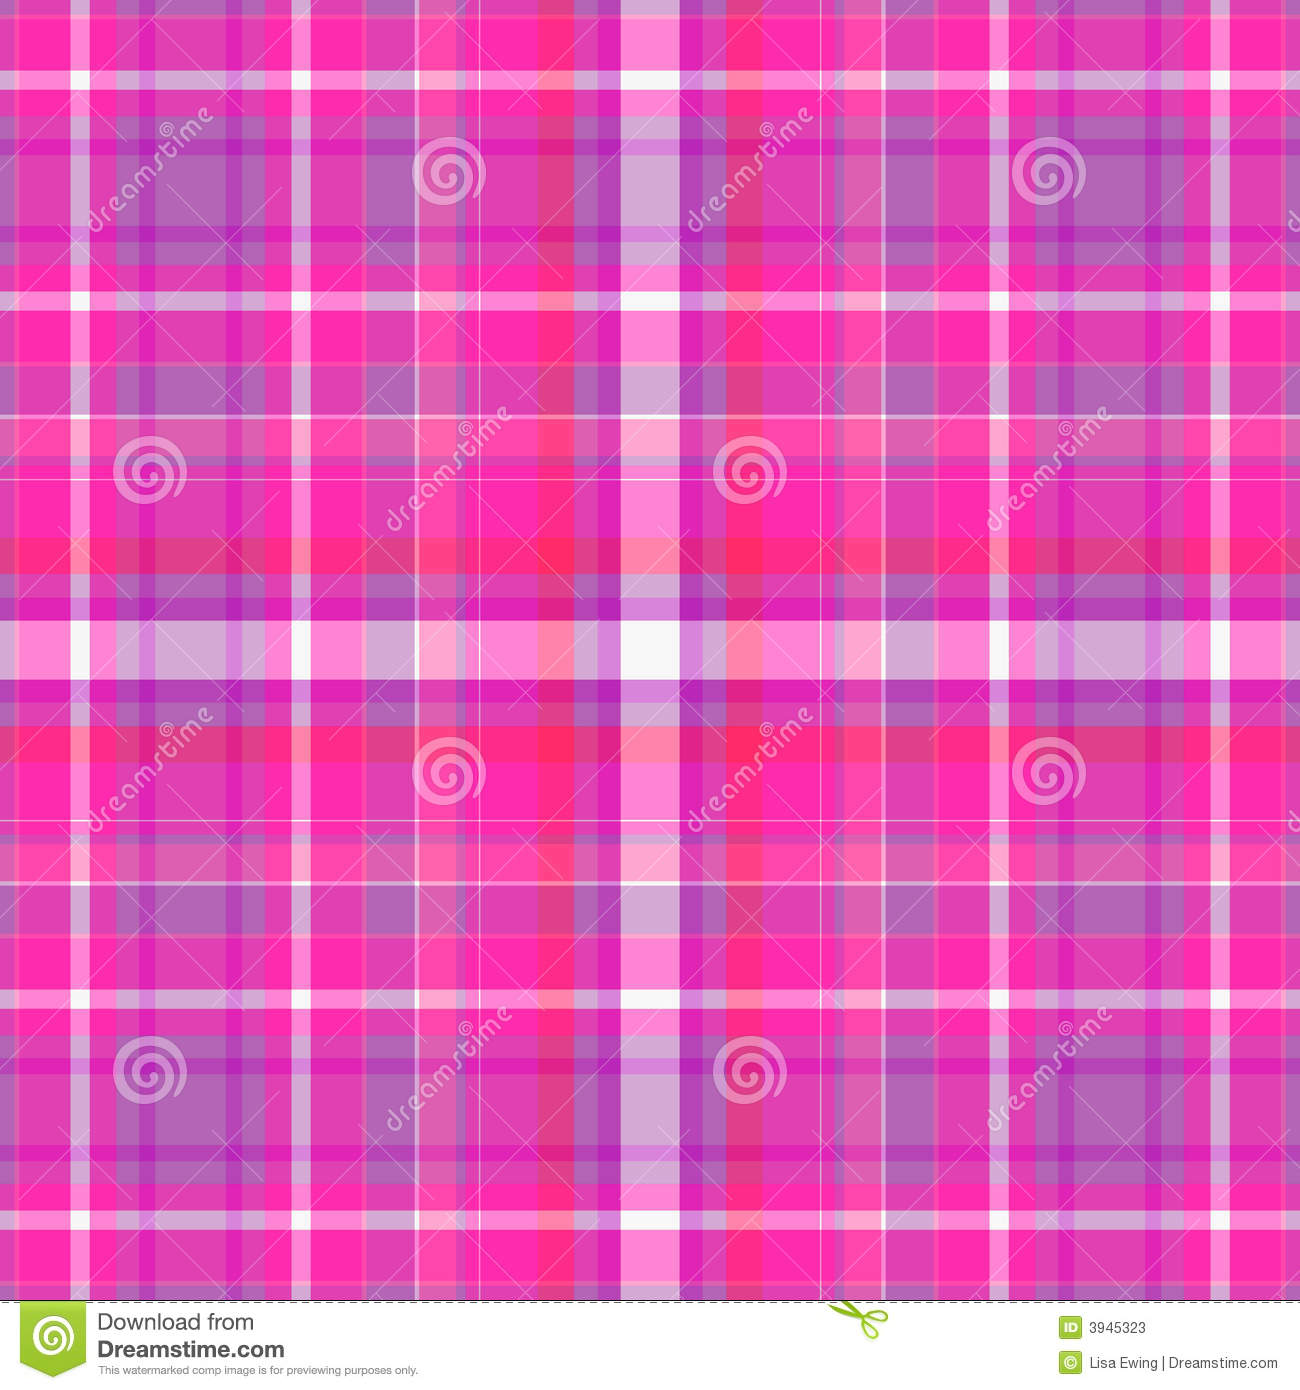 pink and purple plaid background stock illustration